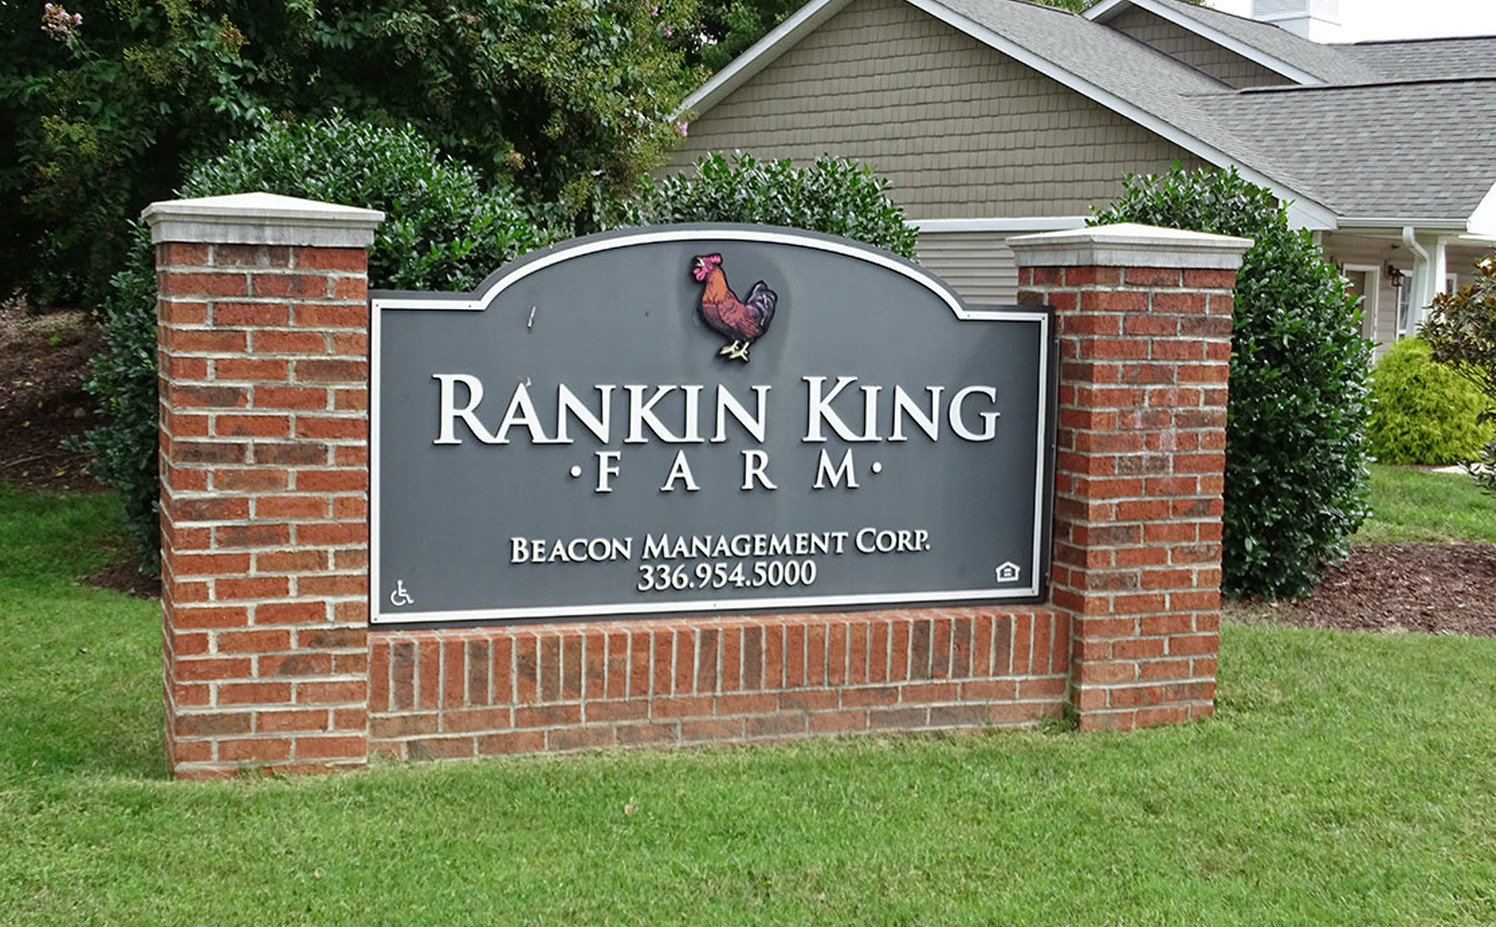 Rankin King Farm